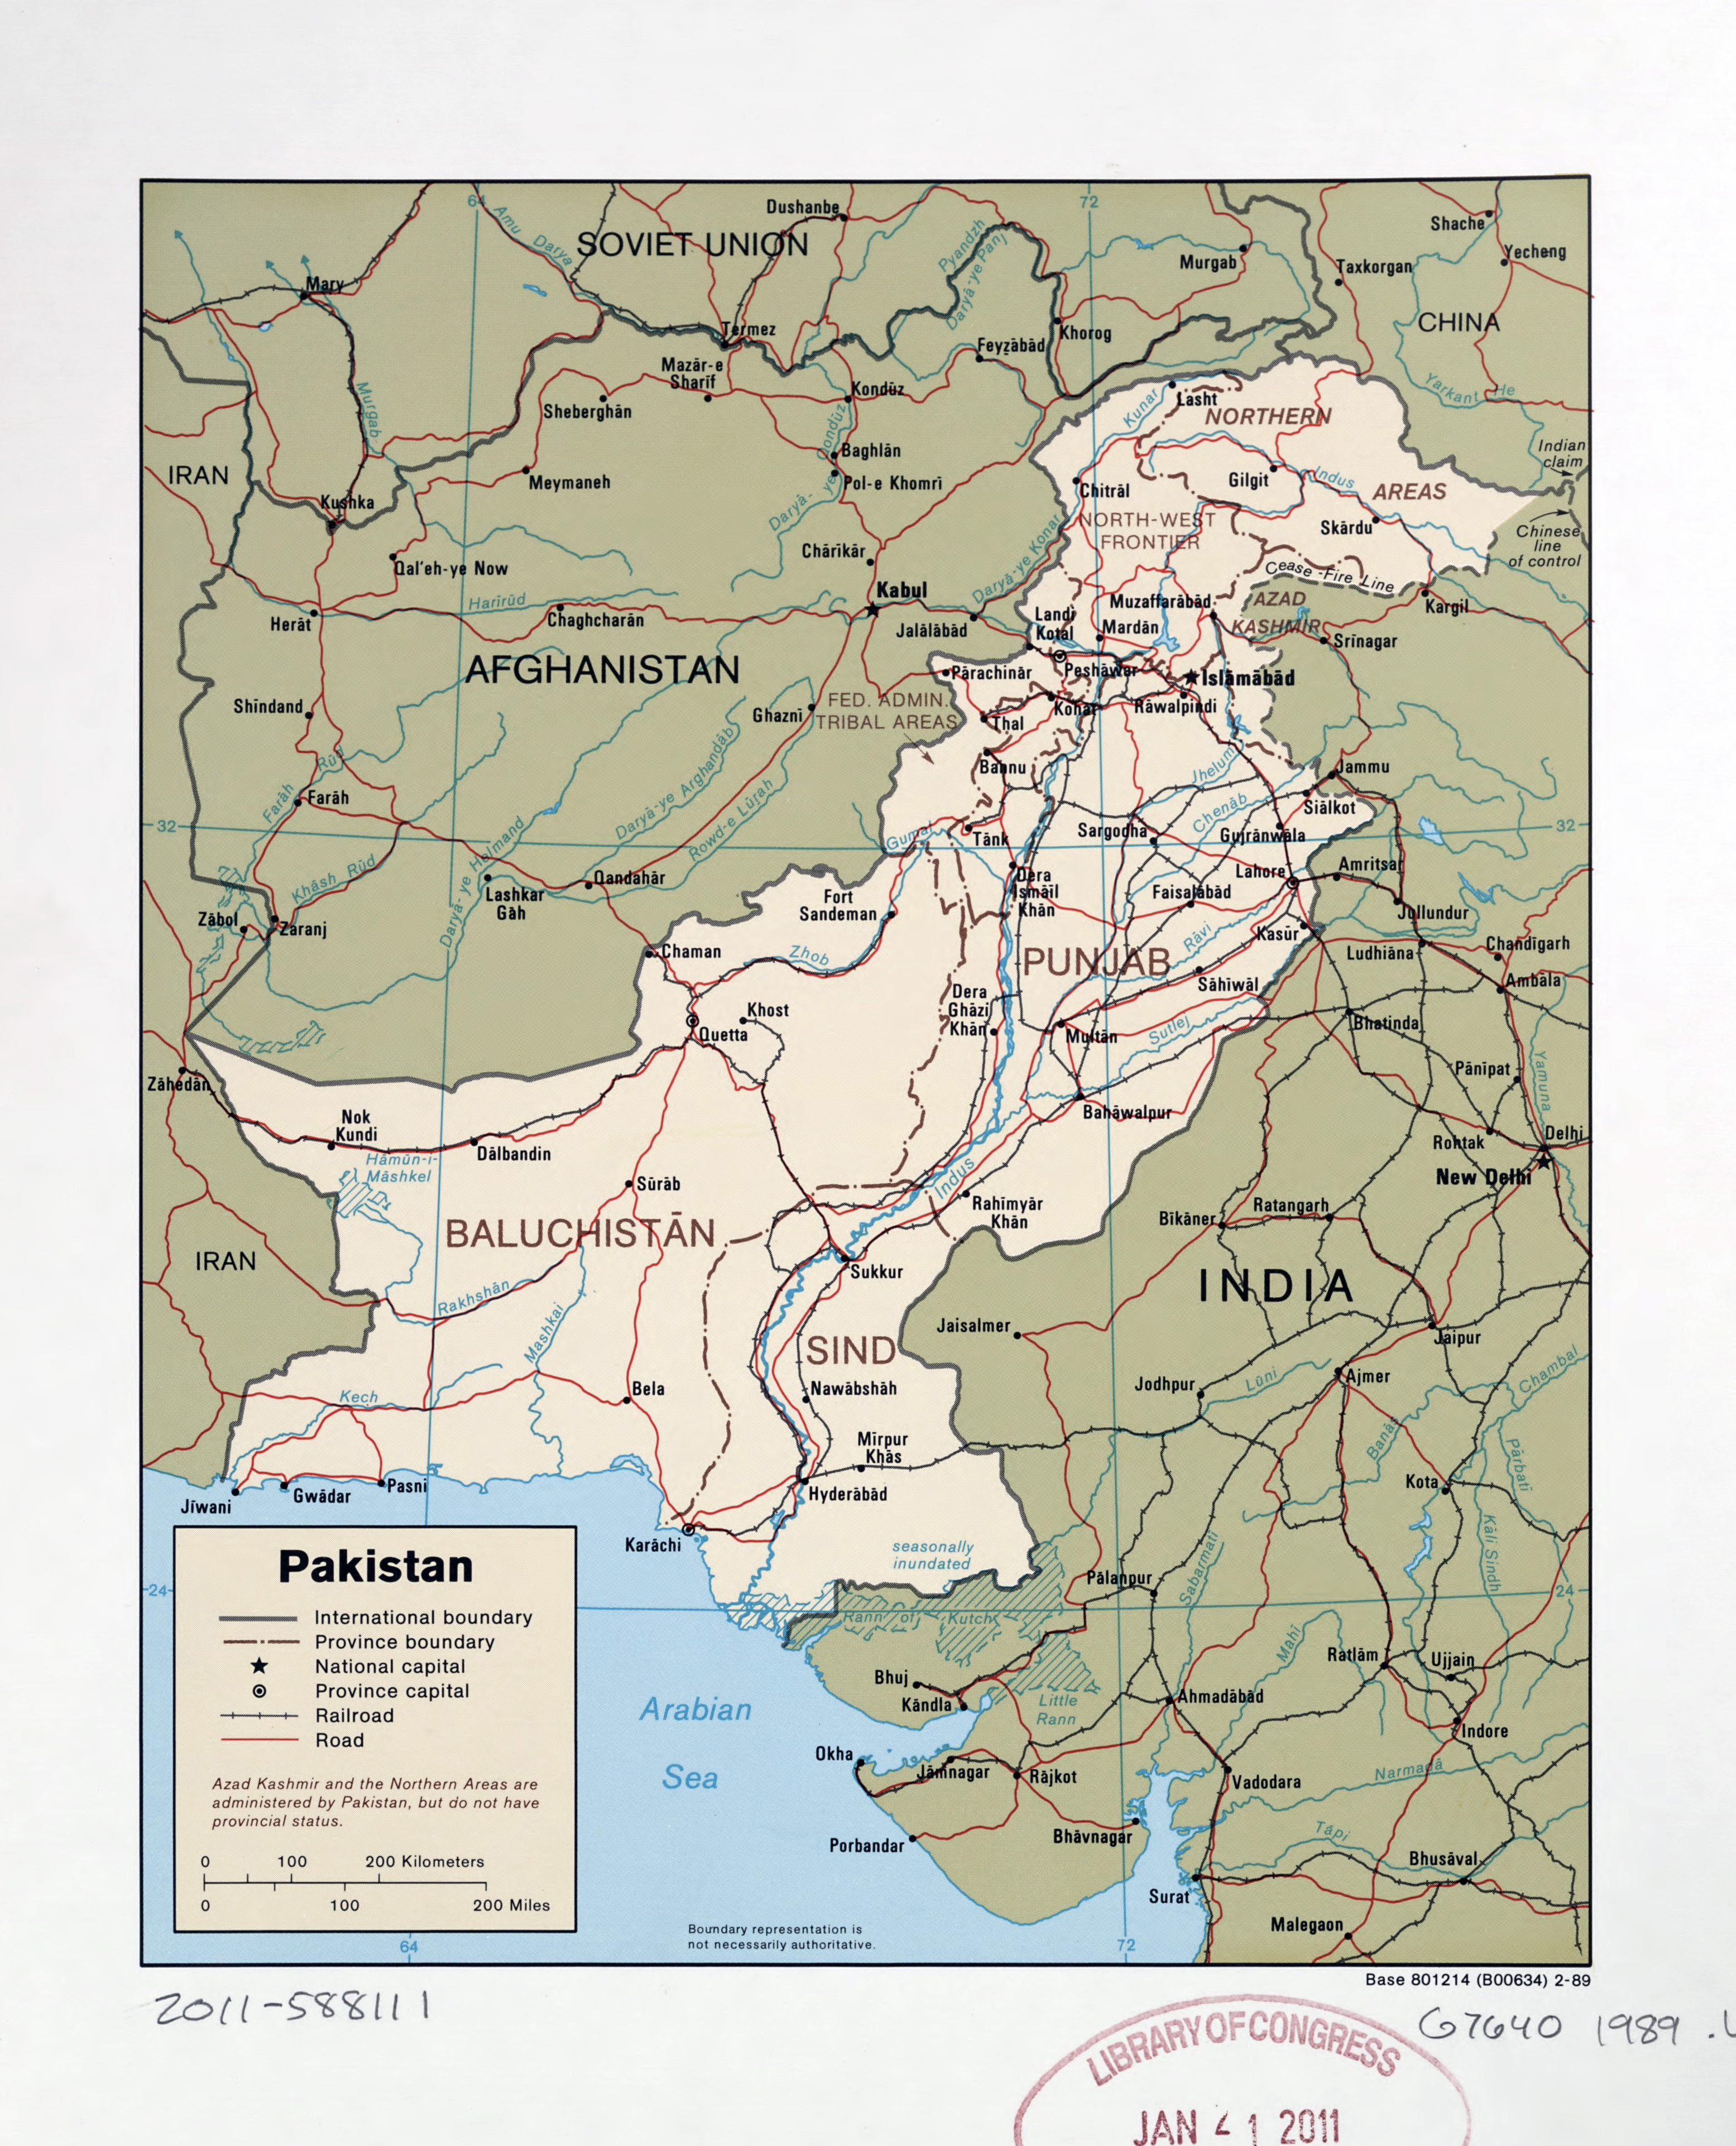 Large Detailed Political And Administrative Map Of Pakistan With - Major cities of pakistan map